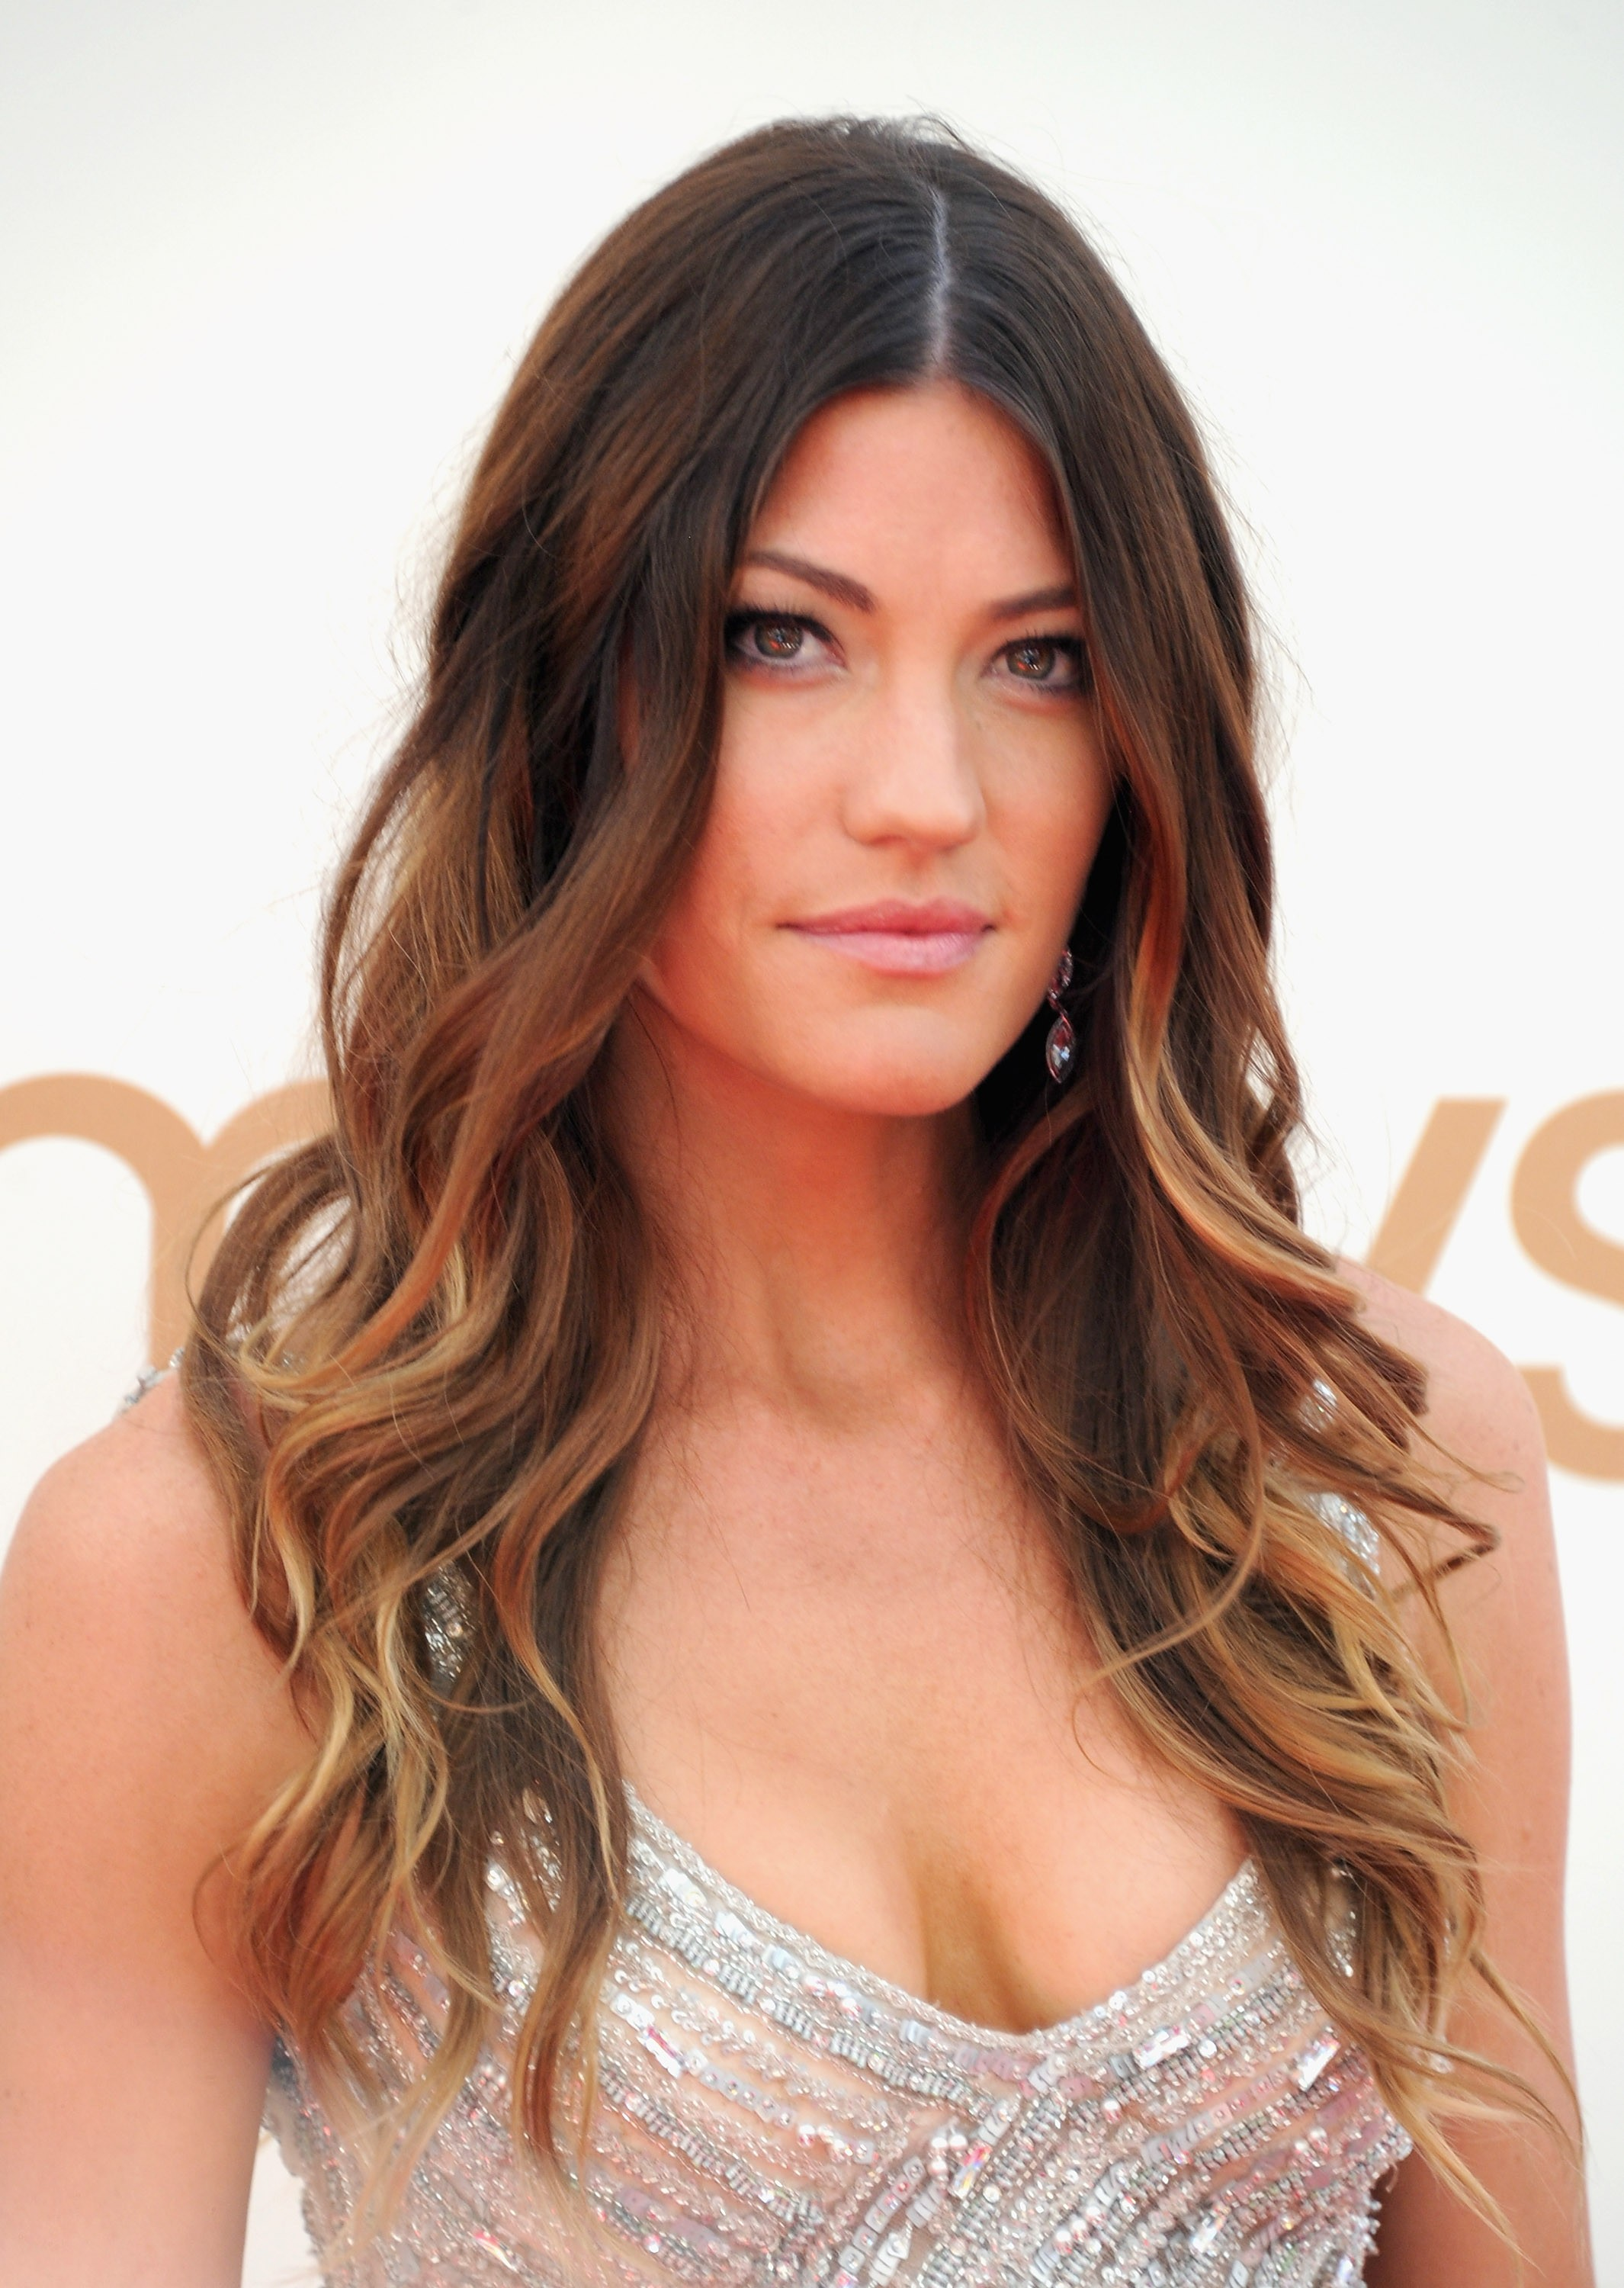 Jennifer Carpenter earned a  million dollar salary, leaving the net worth at 8 million in 2017